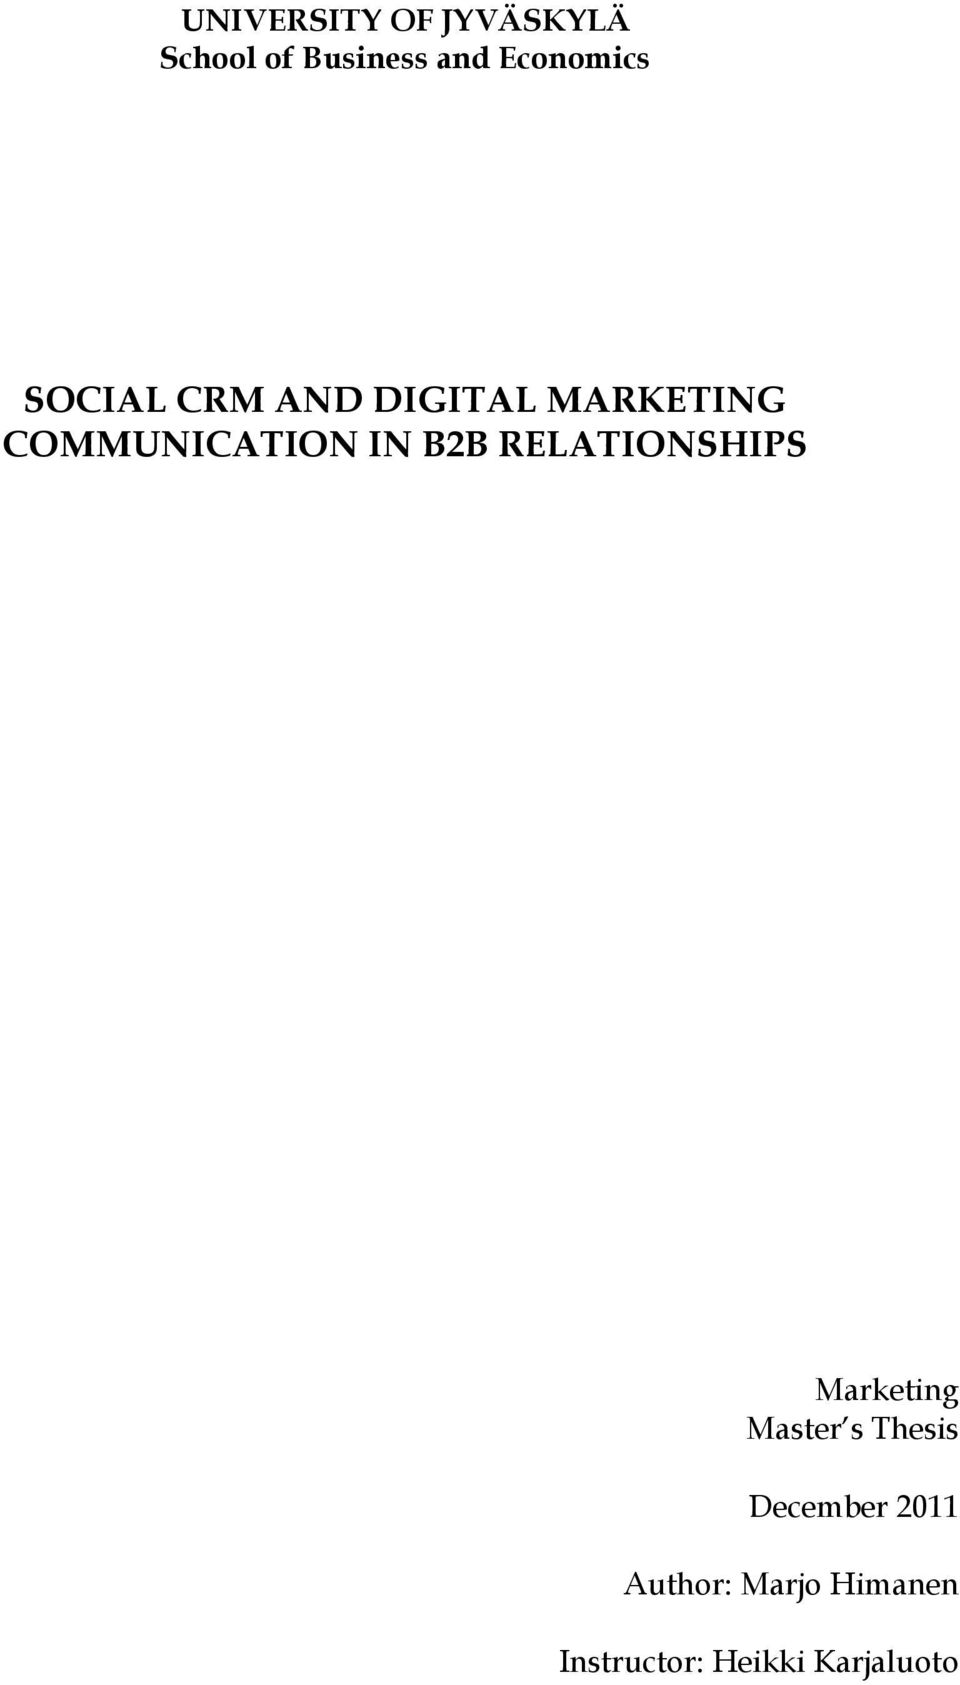 b2b marketing master thesis Marketing is a special field of knowledge where you need to know a lot of facts from a list of outstanding dissertation topics in marketing thesis writing help.